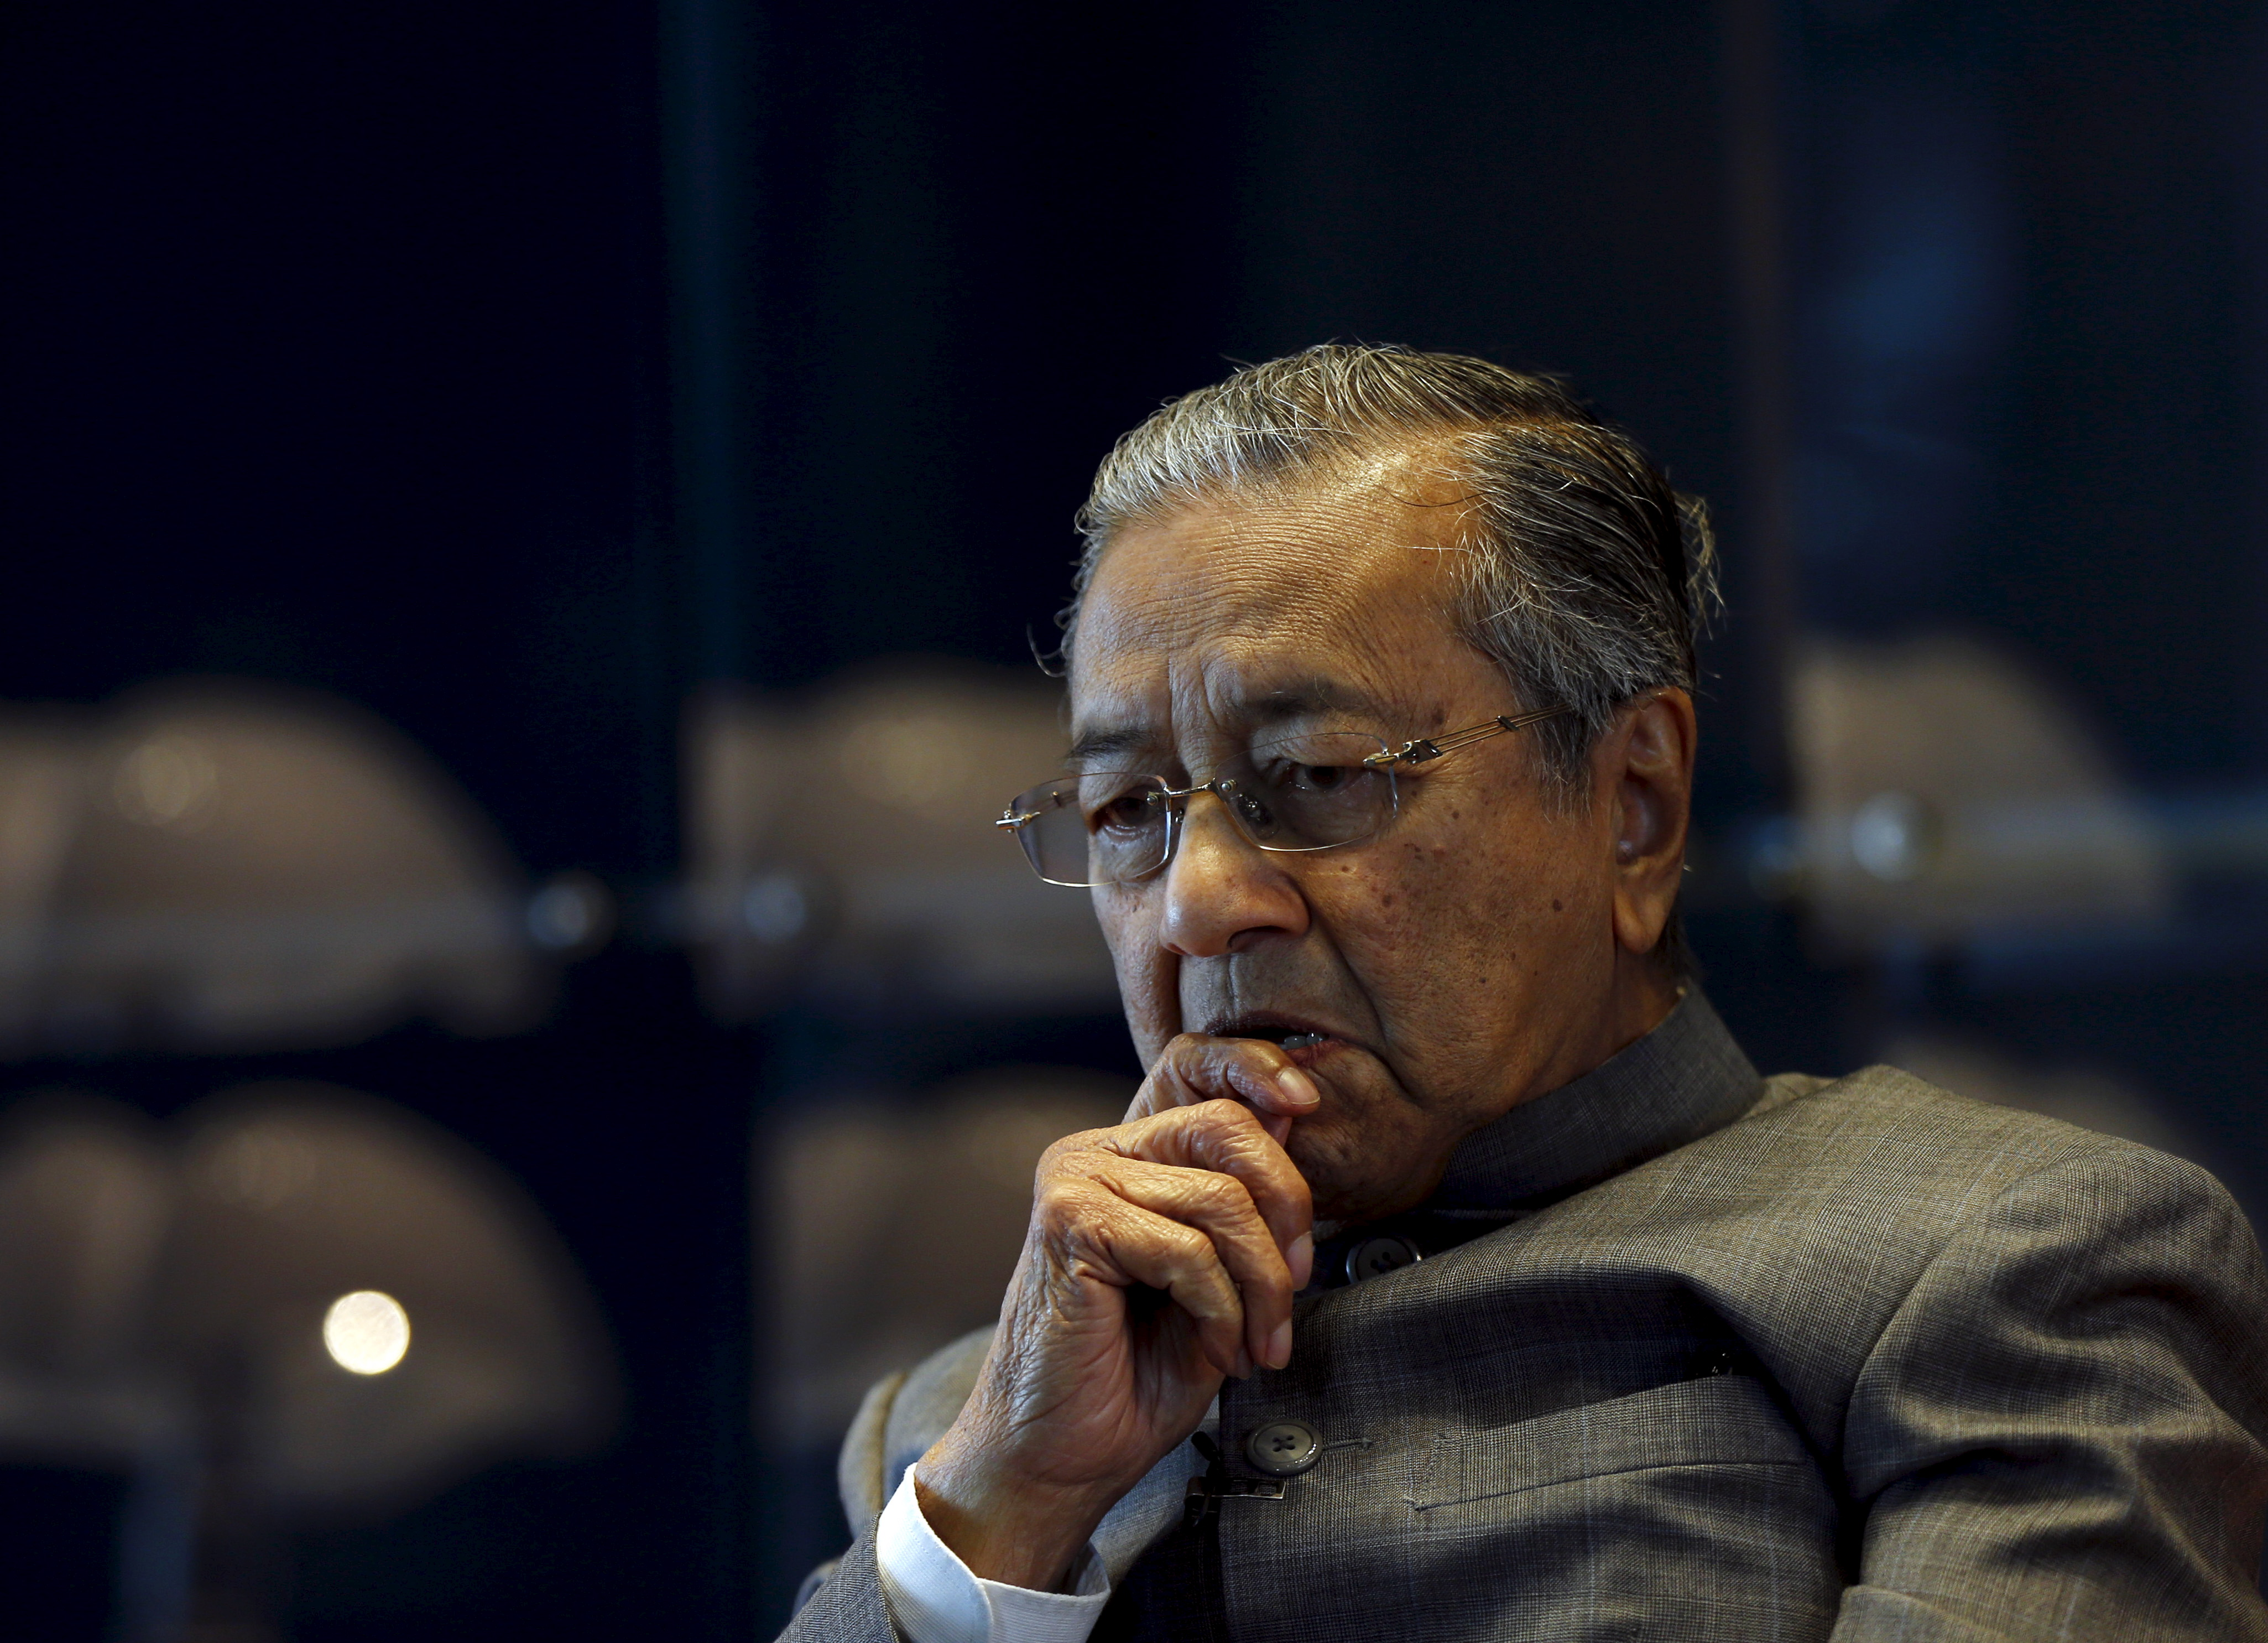 Malaysia's former Prime Minister Mahathir Mohamad at his office in Petronas Towers in Kuala Lumpur on Oct. 22, 2015